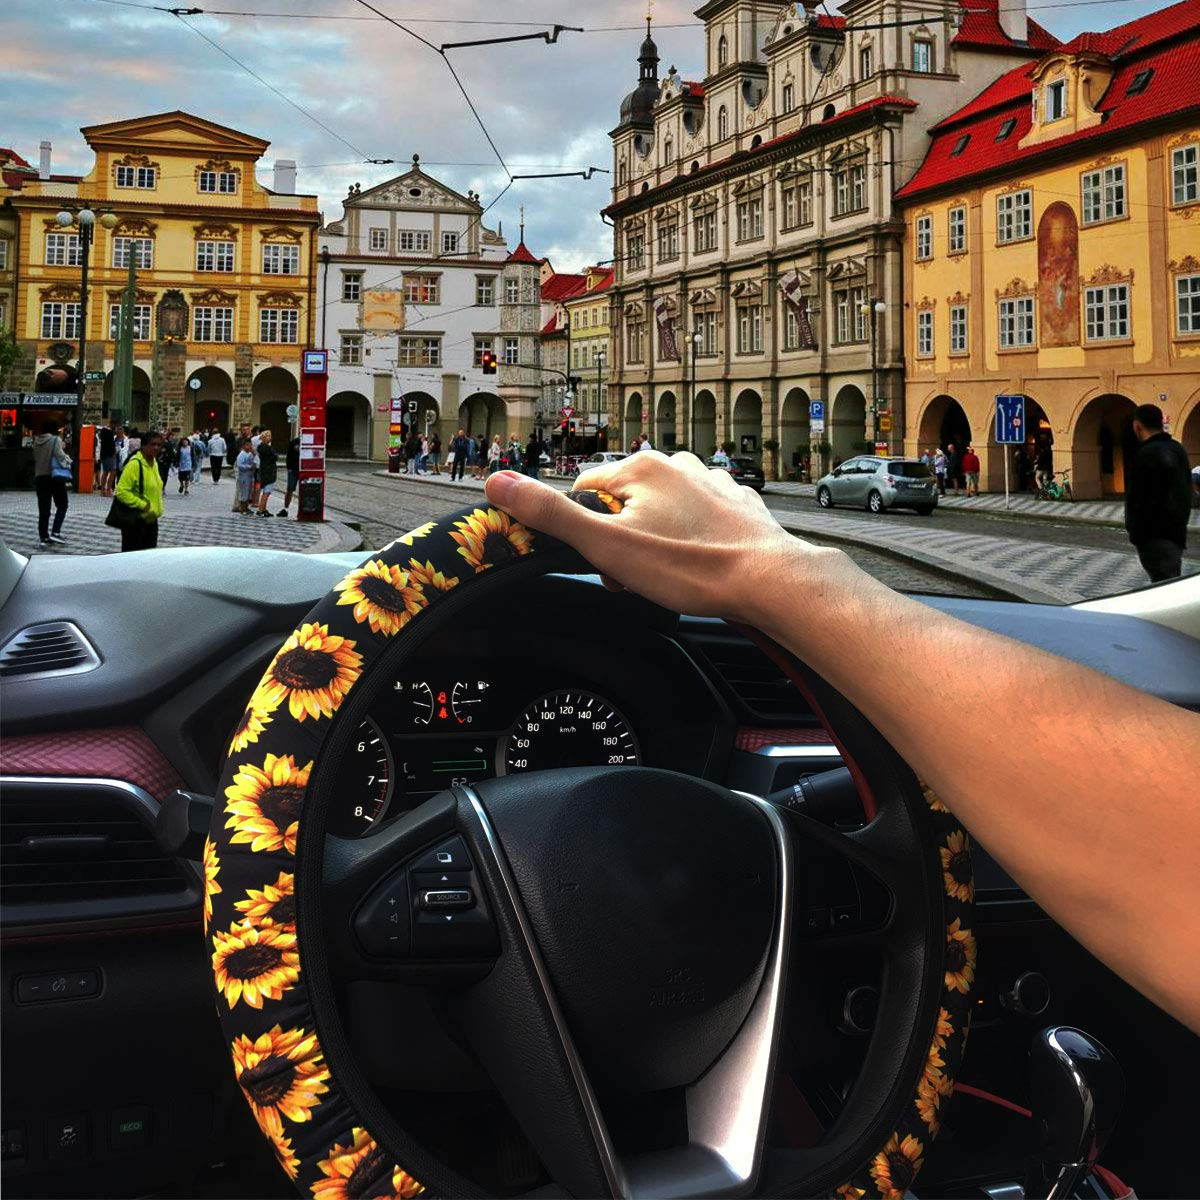 Cute and Fashionable Universal Sunflower Steering Wheel Cover with Sunflower car Accessories Porpor/ Booya Sunflower Steering Wheel Cover+2 Pack Car Coaster 2 Pack Coin Key Chain